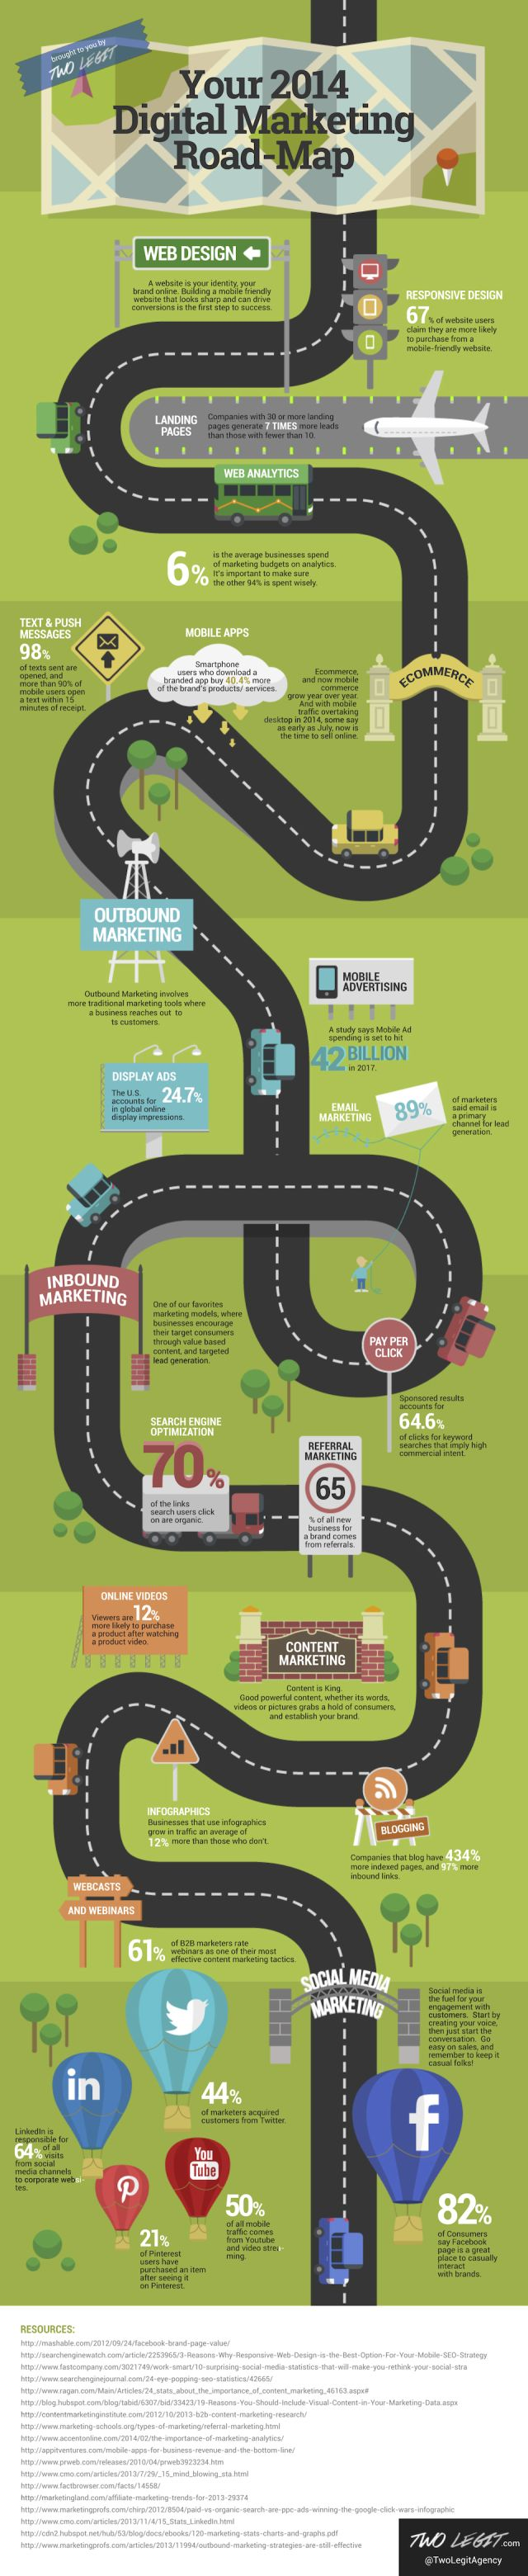 Your 2014 Digital Marketing Roadmap marketingtechblog.com  by Douglas Karr